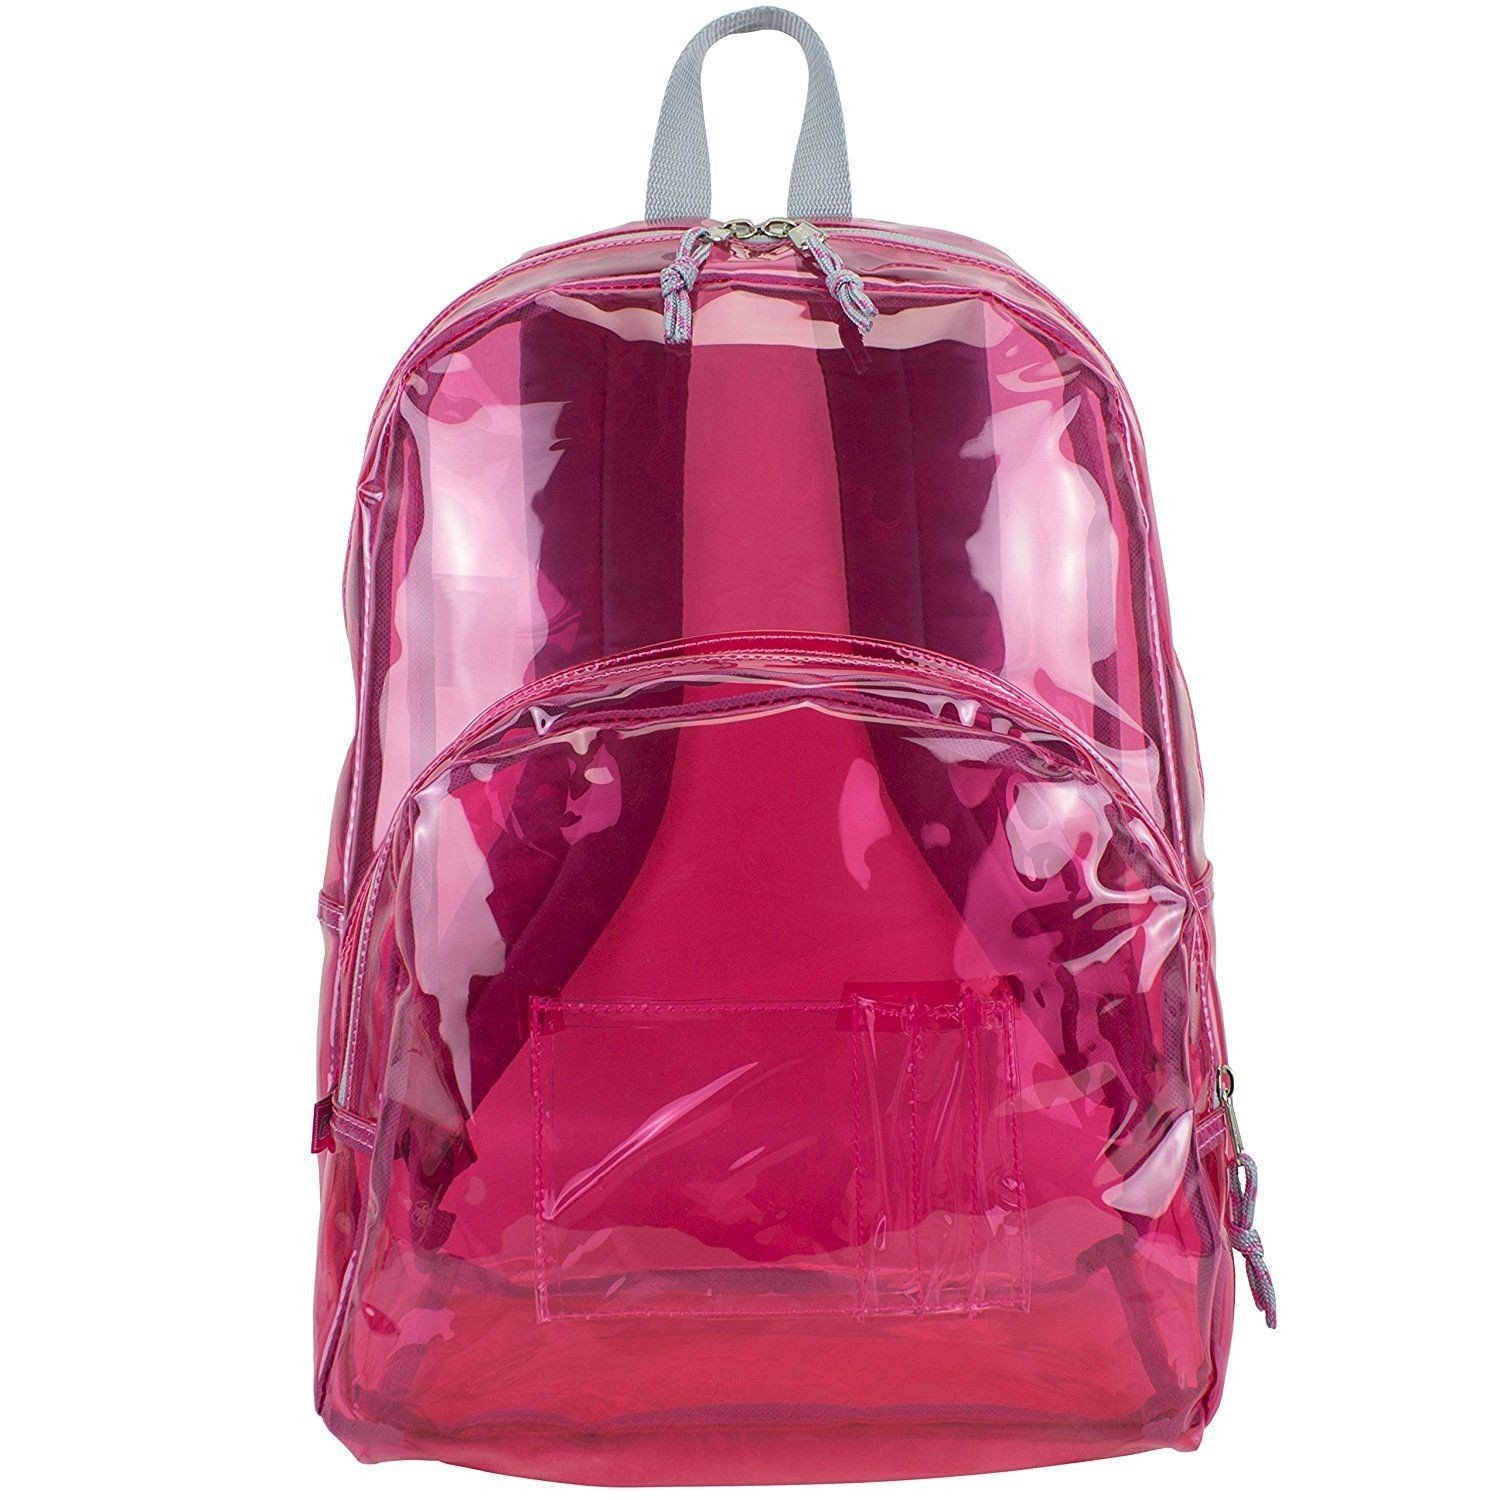 17'' Clear Pink Wholesale Backpack - Case of 24 by Eastsport (Image #1)